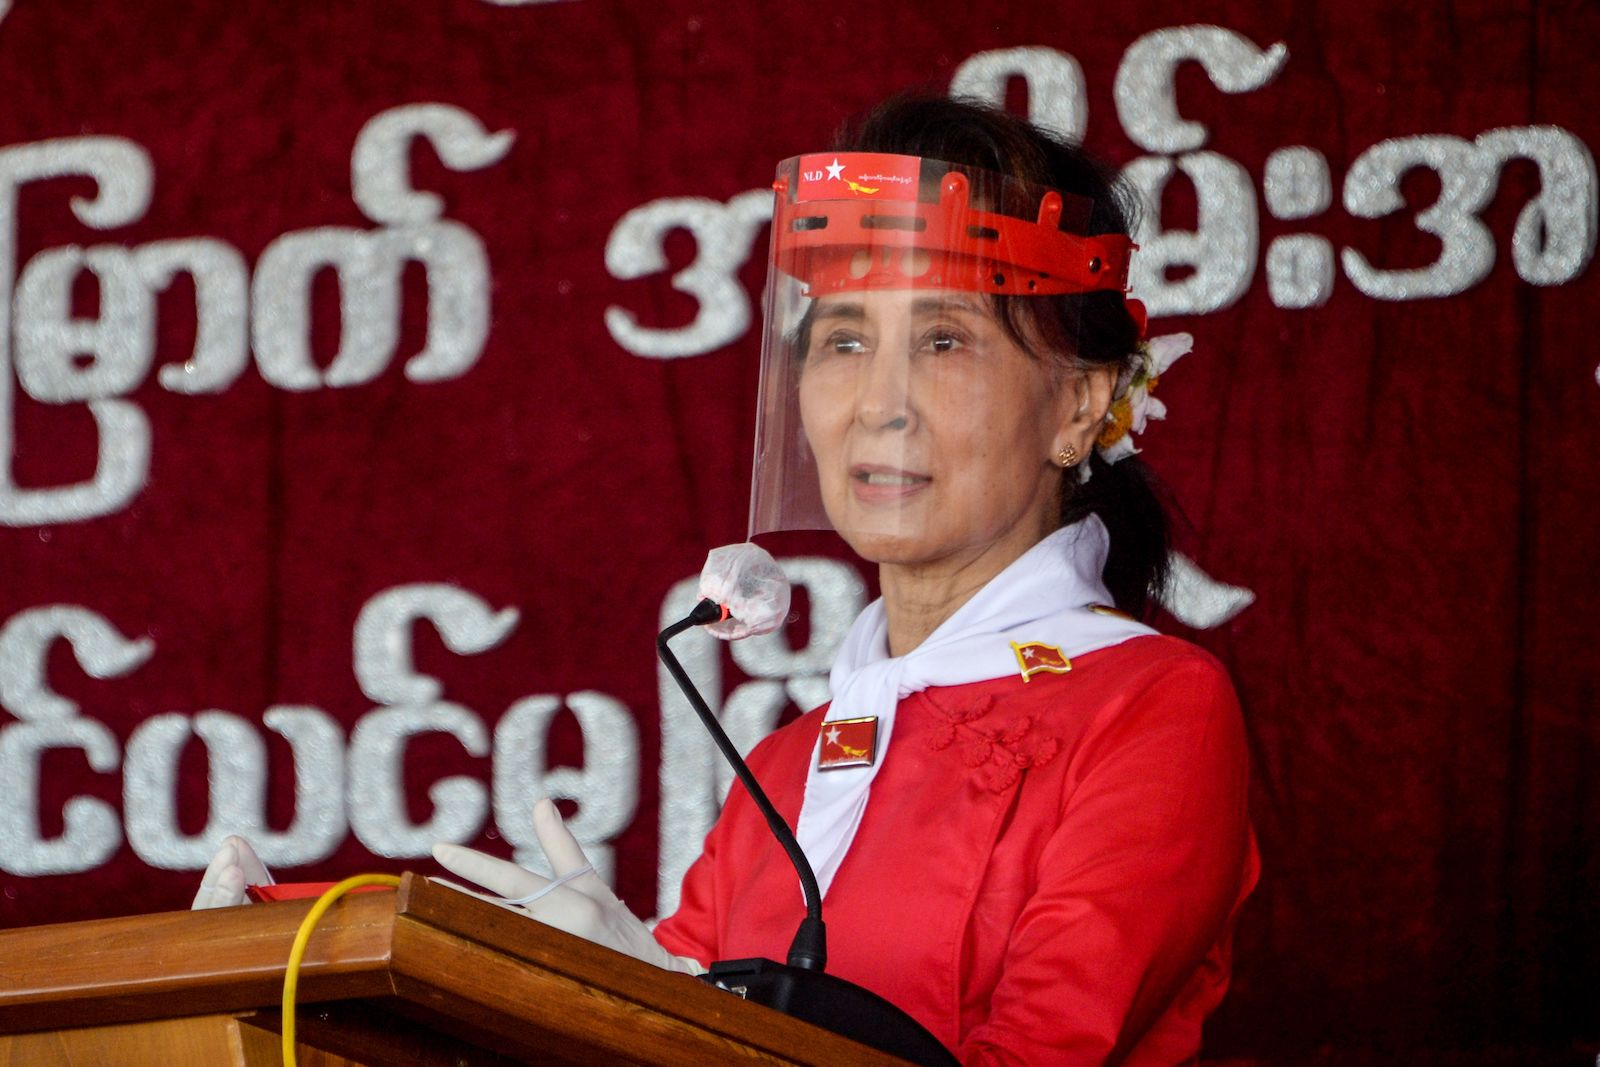 Myanmar's political leader Aung San Suu Kyi at a ceremony in Naypyidaw, 27 September 2020 (Thet Aung/AFP via Getty Images)